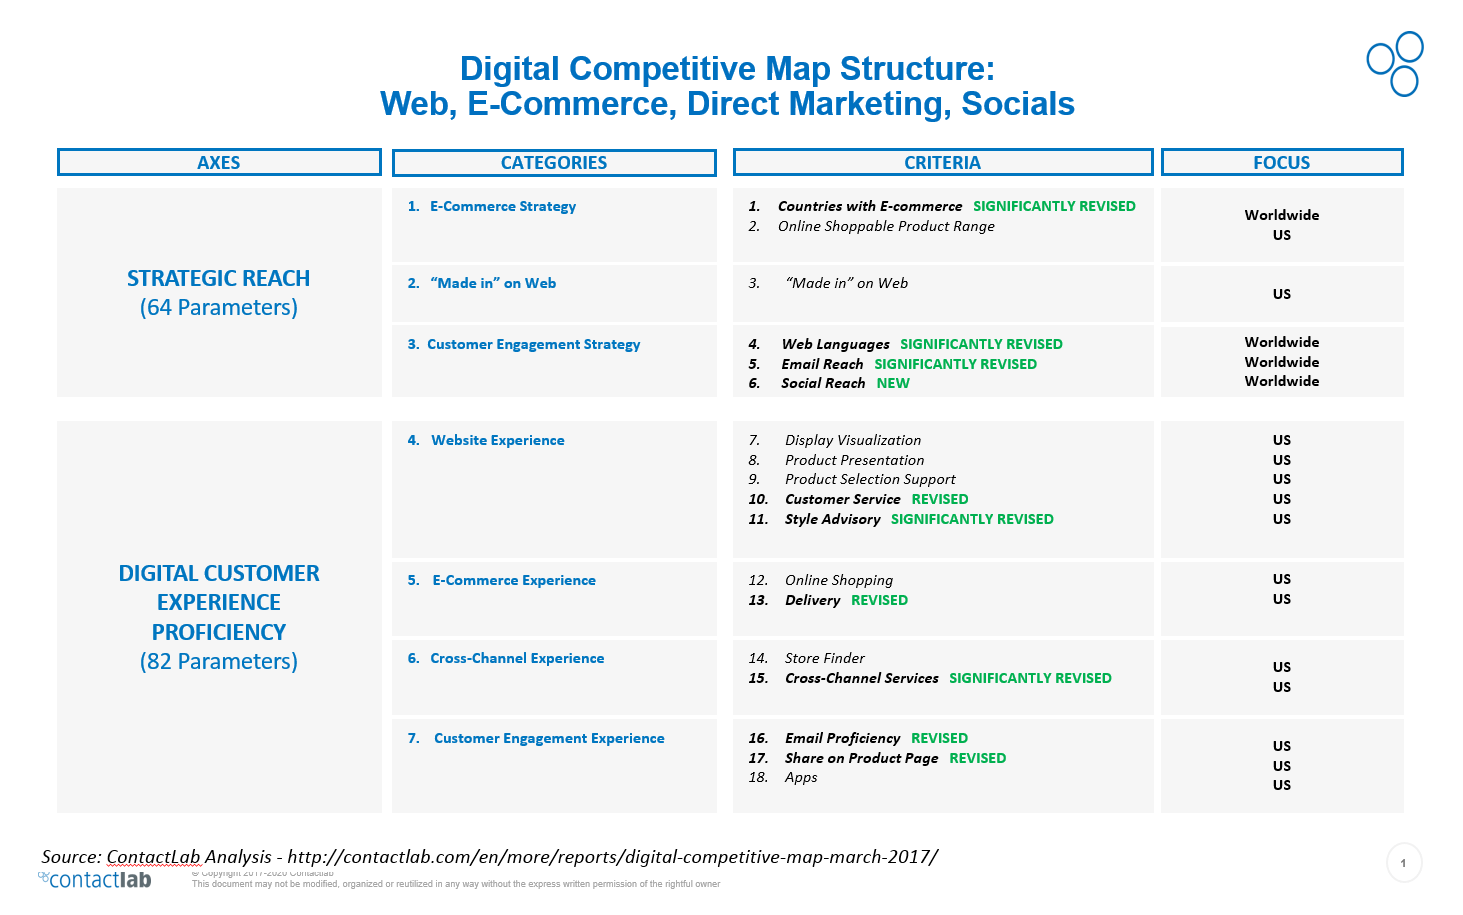 Digital Competitive Map 2017